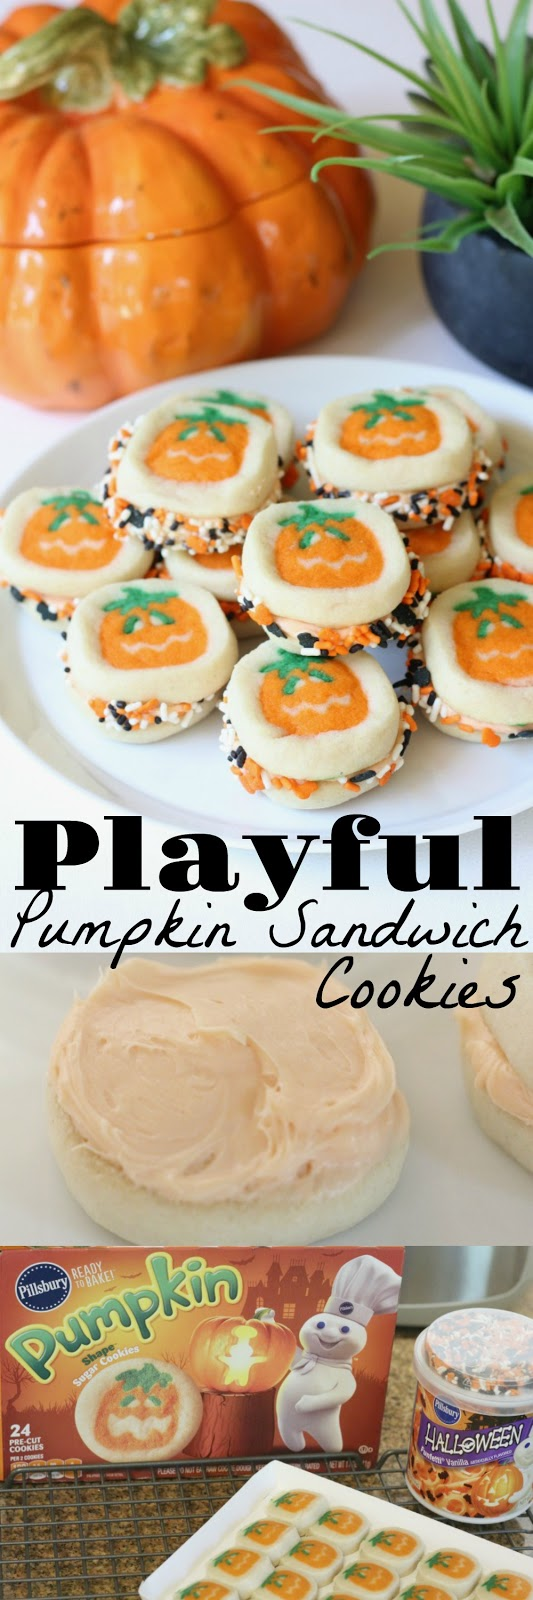 Super easy sugar cookie recipe that's fun for fall and Halloween treats